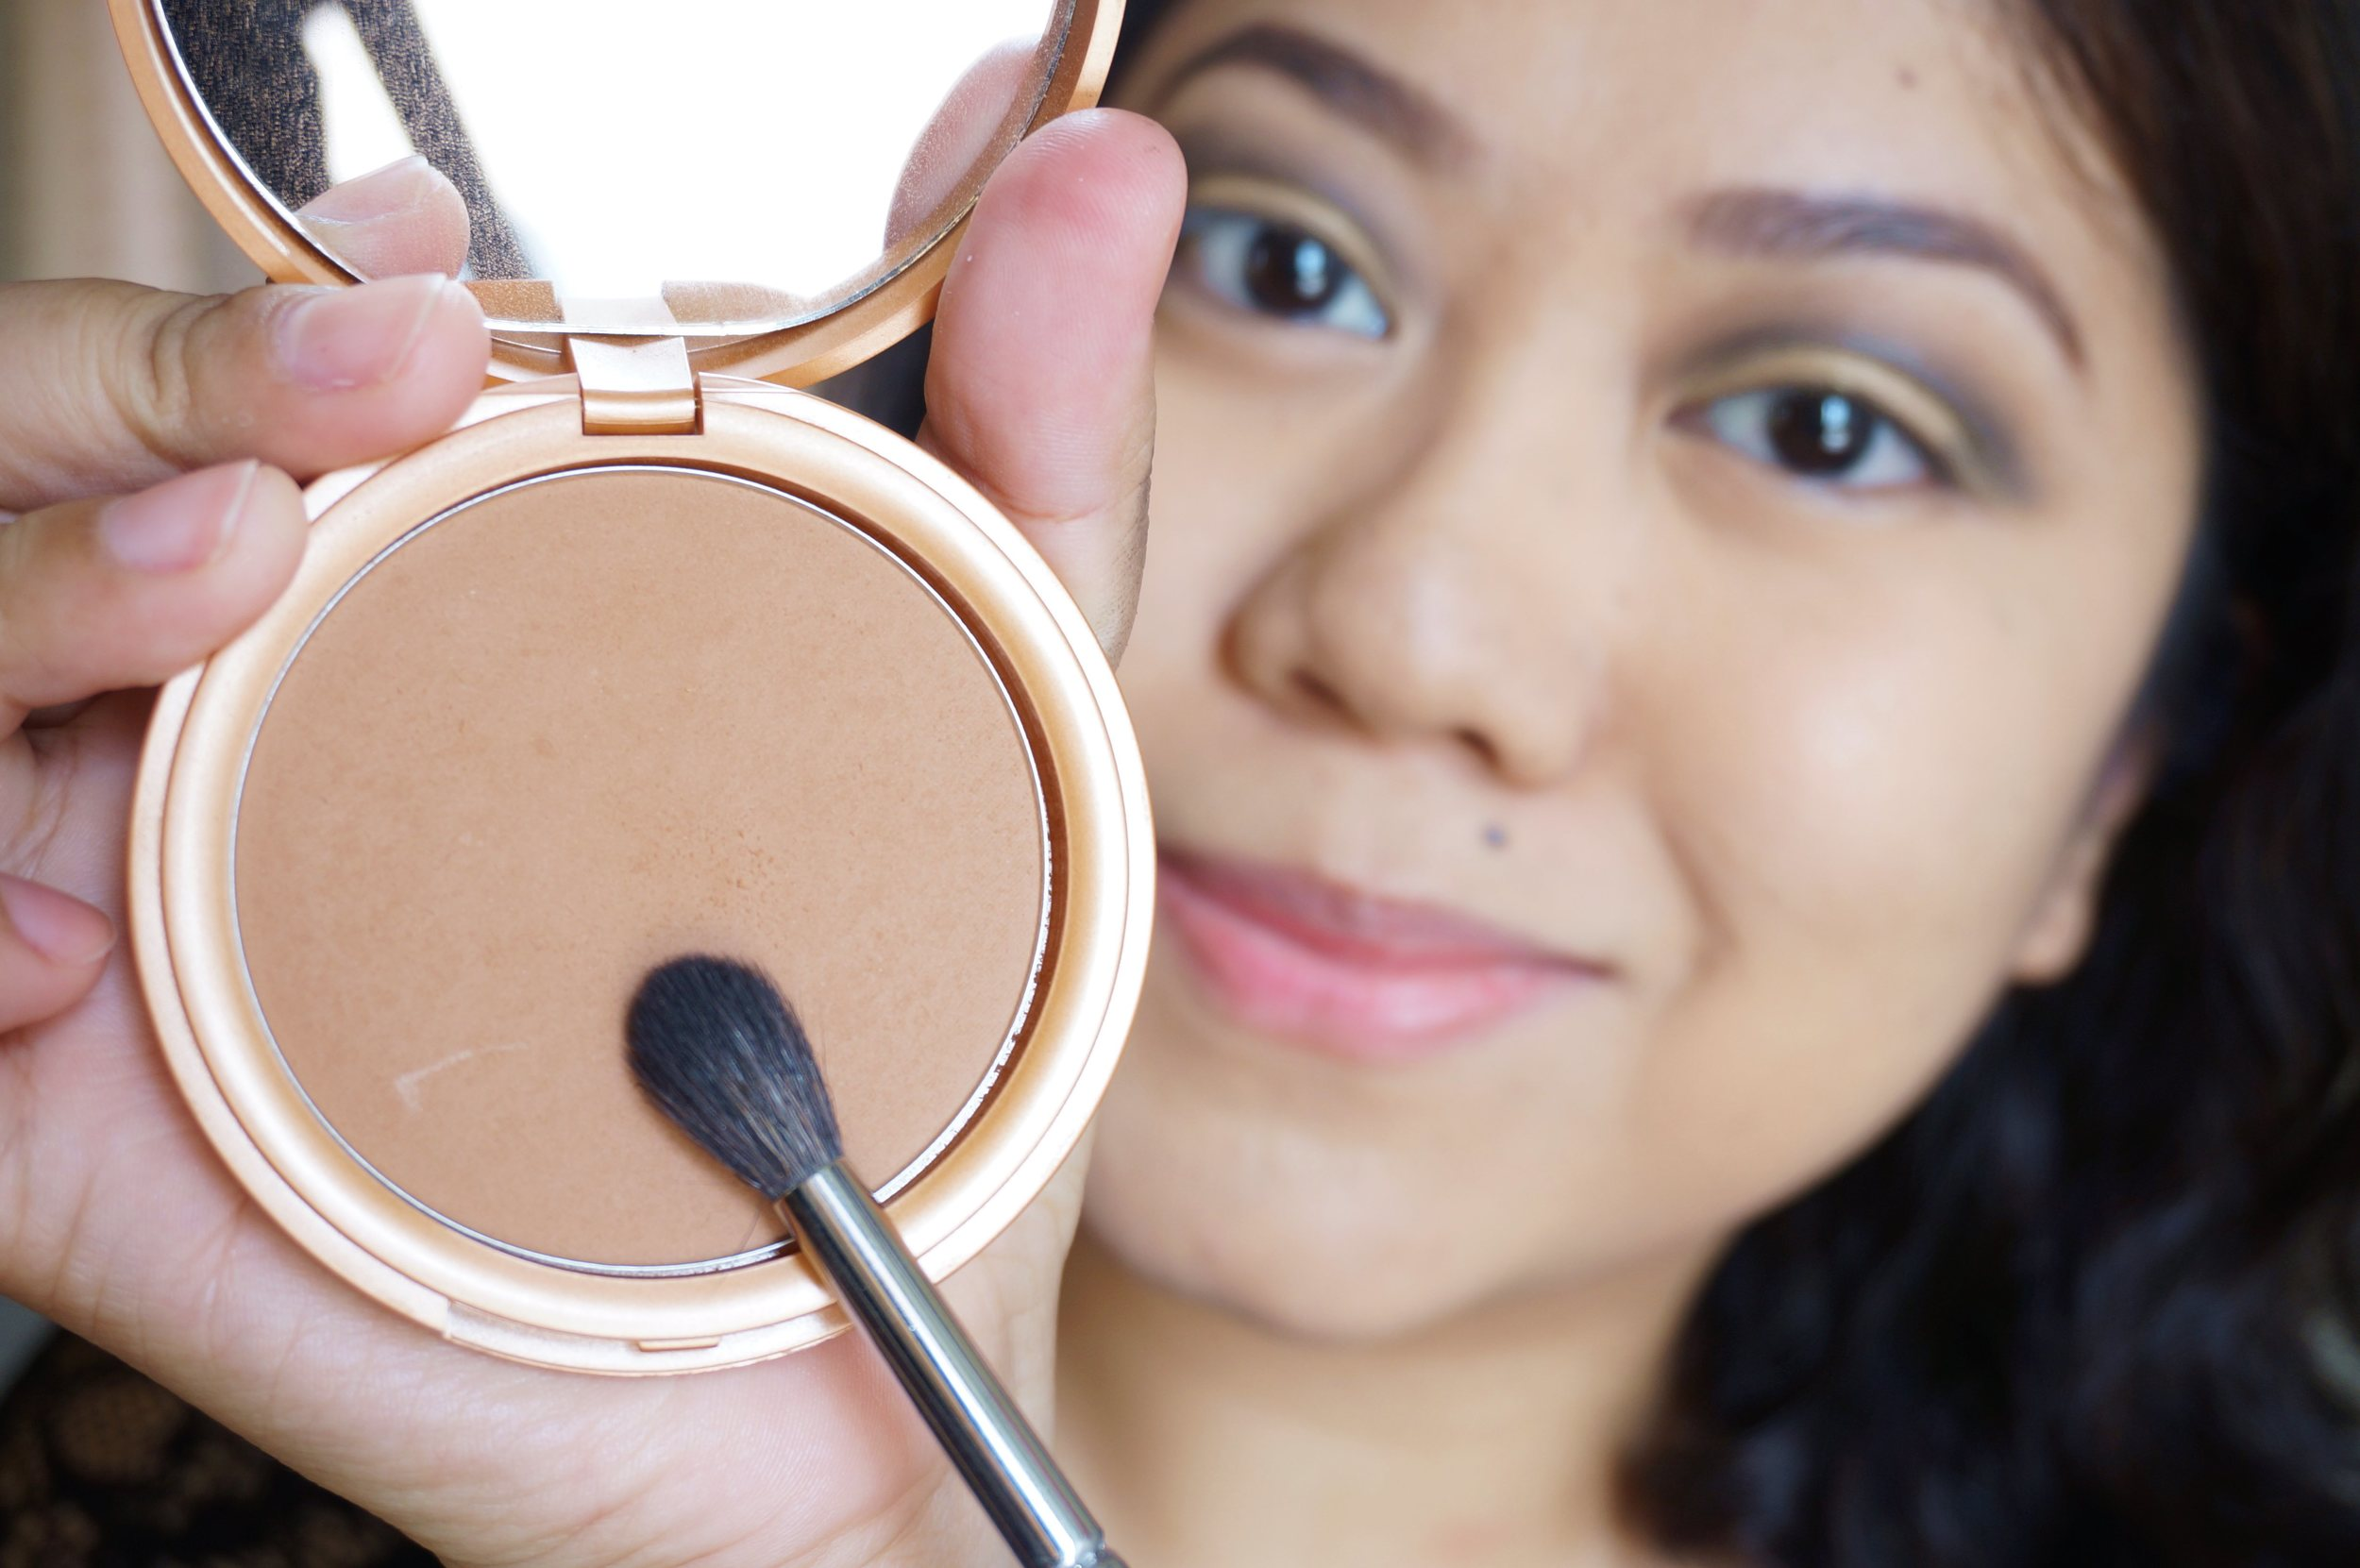 Step 7: Now you've got your smoky eye shape, you need to blend that out with a matte, brown contour shade. You want the edges to soften up!